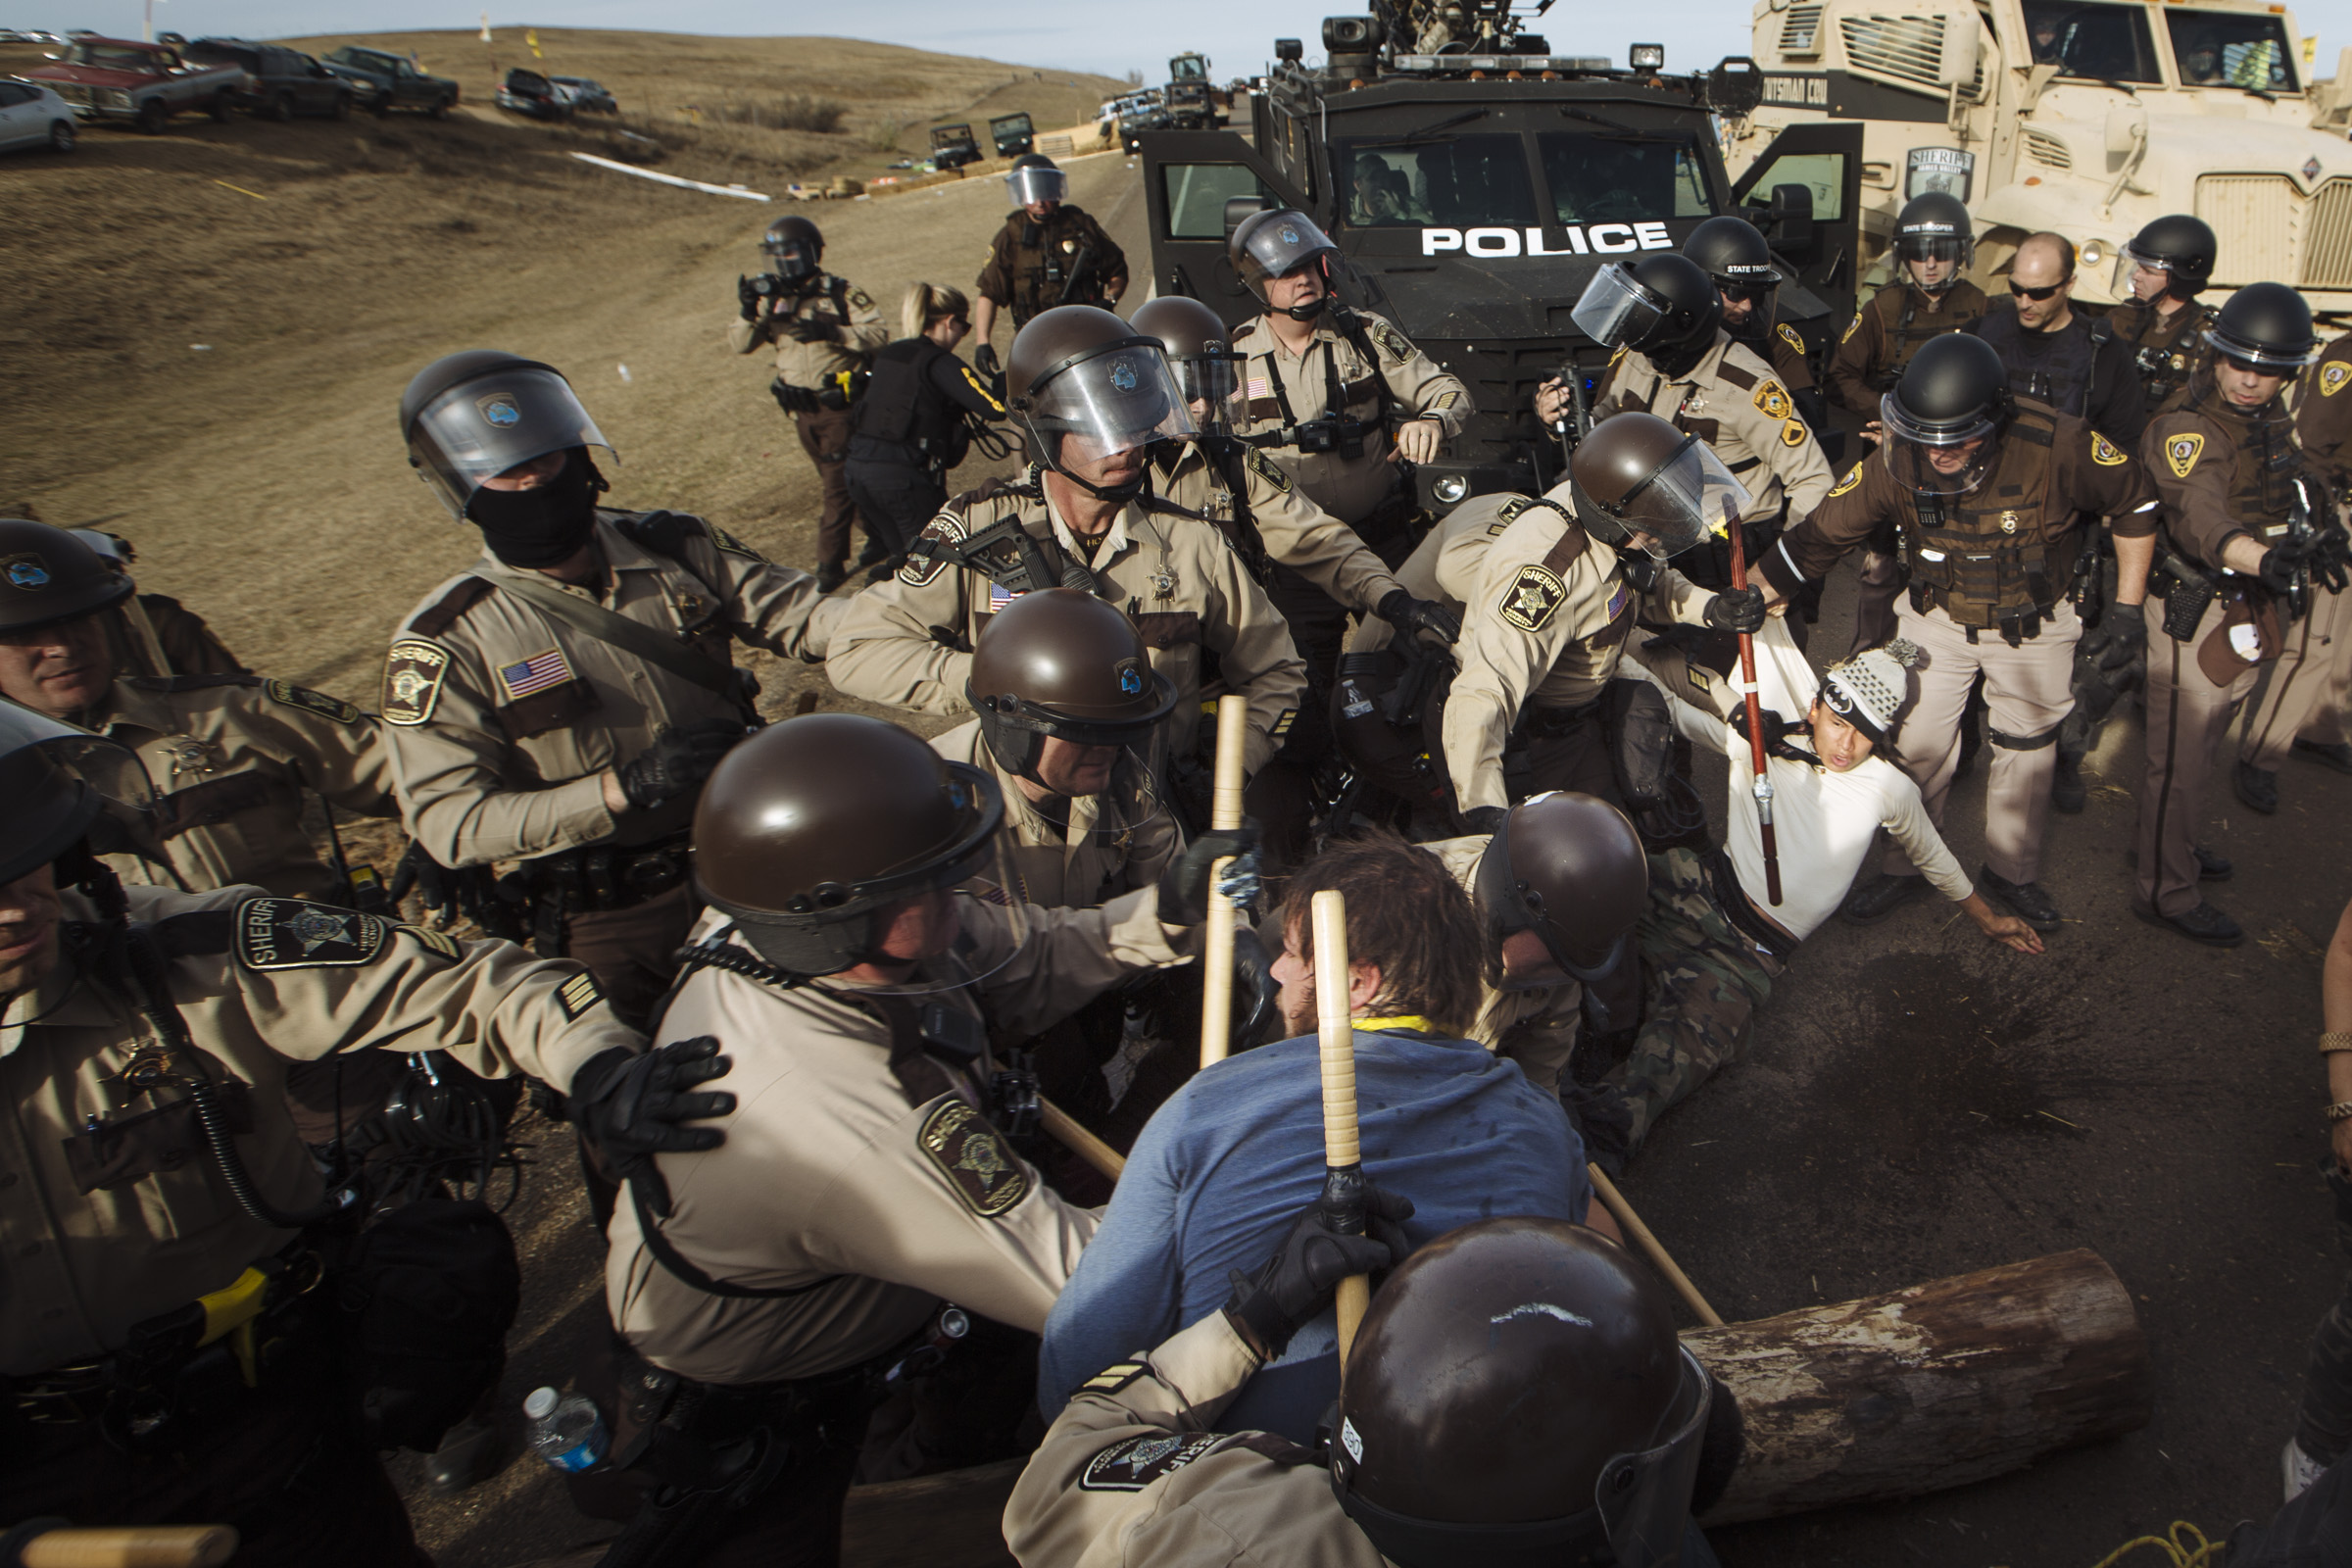 Riot police conduct mass arrests as they clear the northernmost protest encampment, which was built directly in the path of the Dakota Access Pipeline. Thursday, Oct. 27, 2016. (Photo by Angus Mordant/GroundTruth)